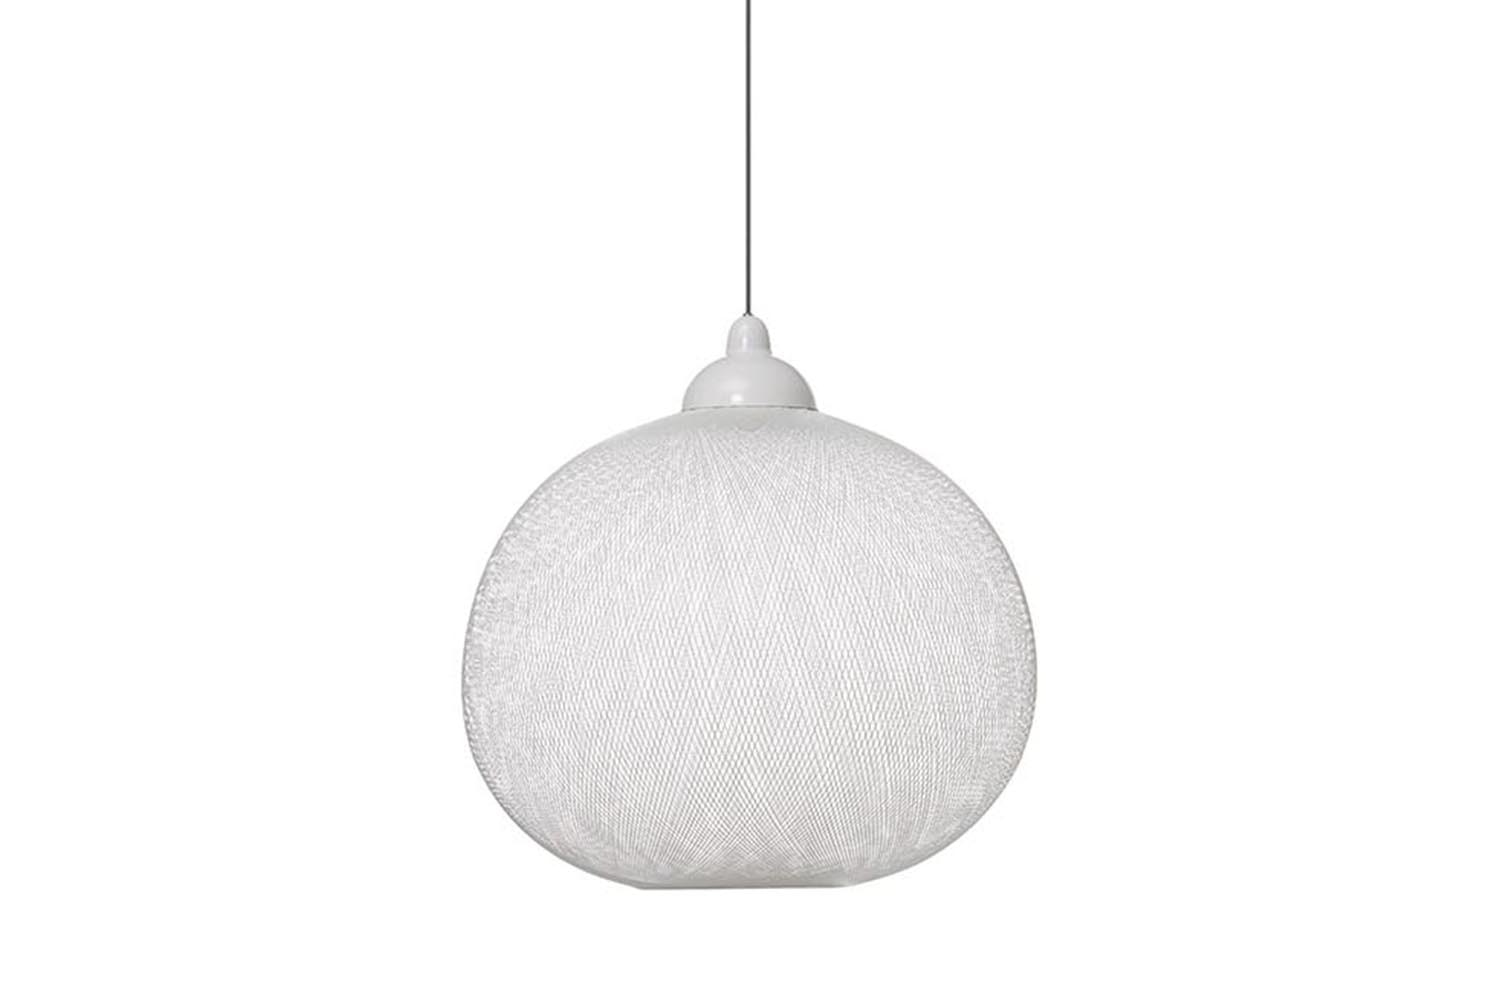 Non Random Large White Suspension Lamp by Bertjan Pot for Moooi